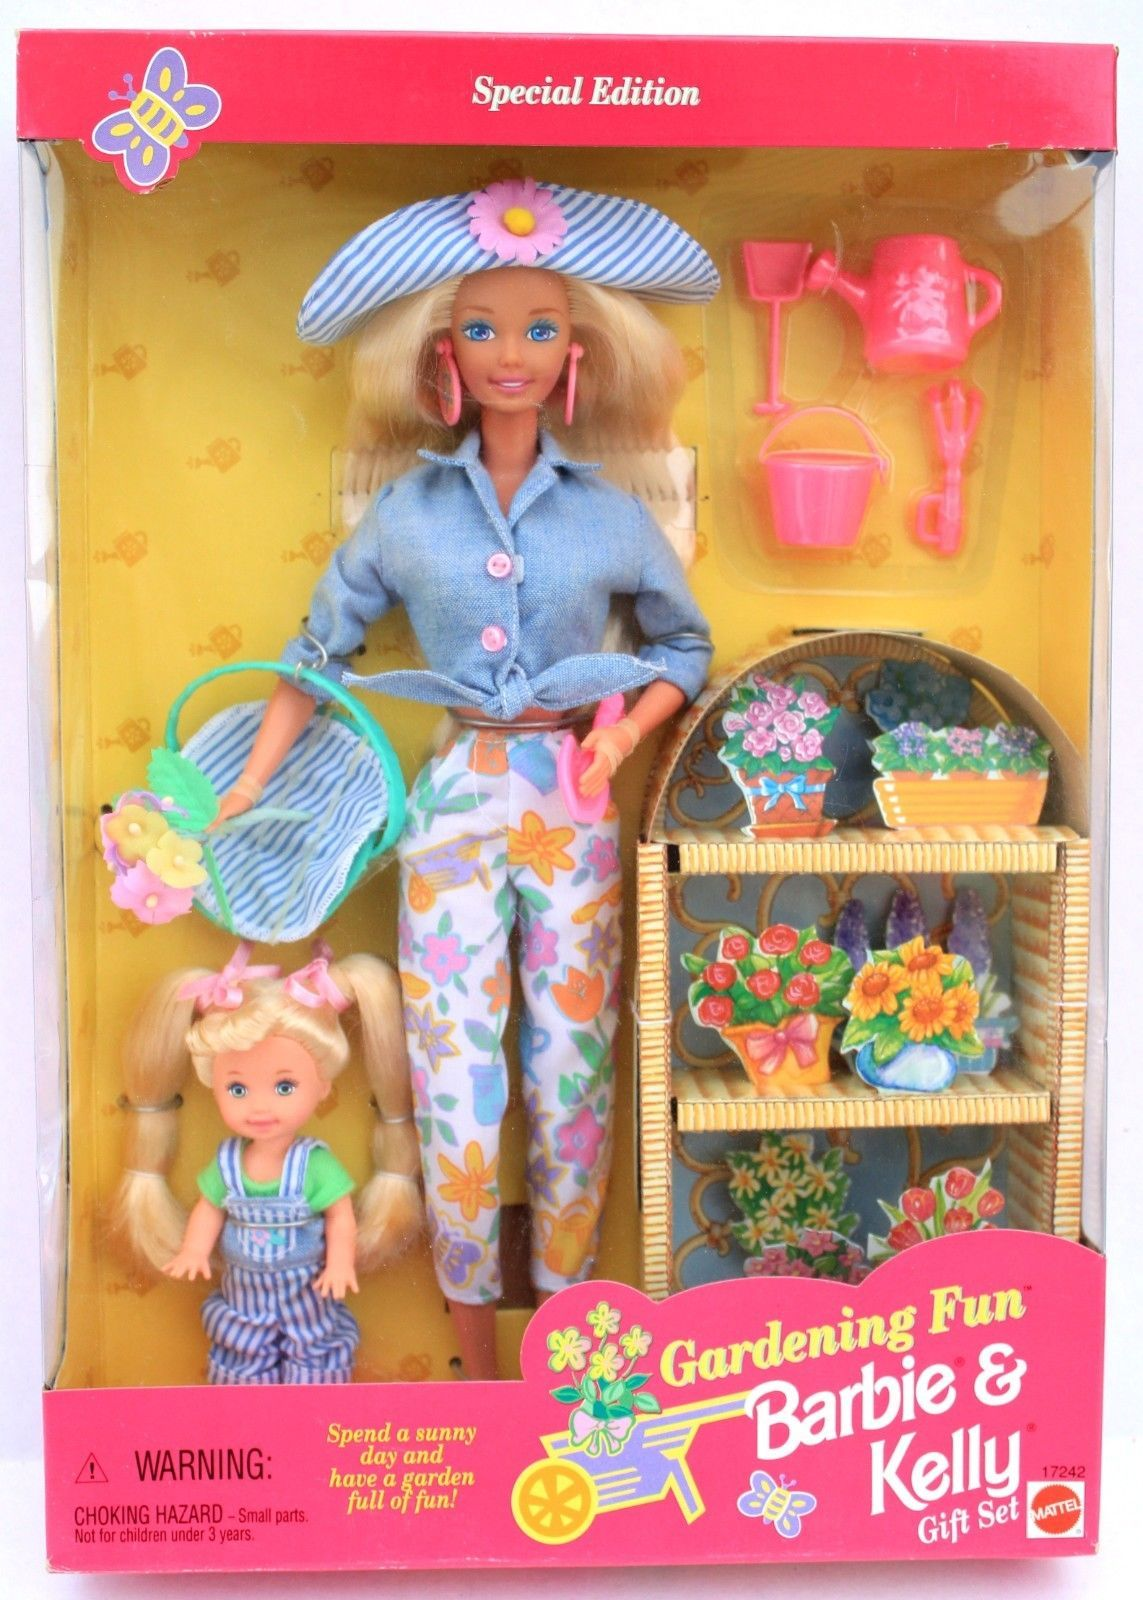 Barbie Kelly Tommy Doll Playroom Record Album Toys